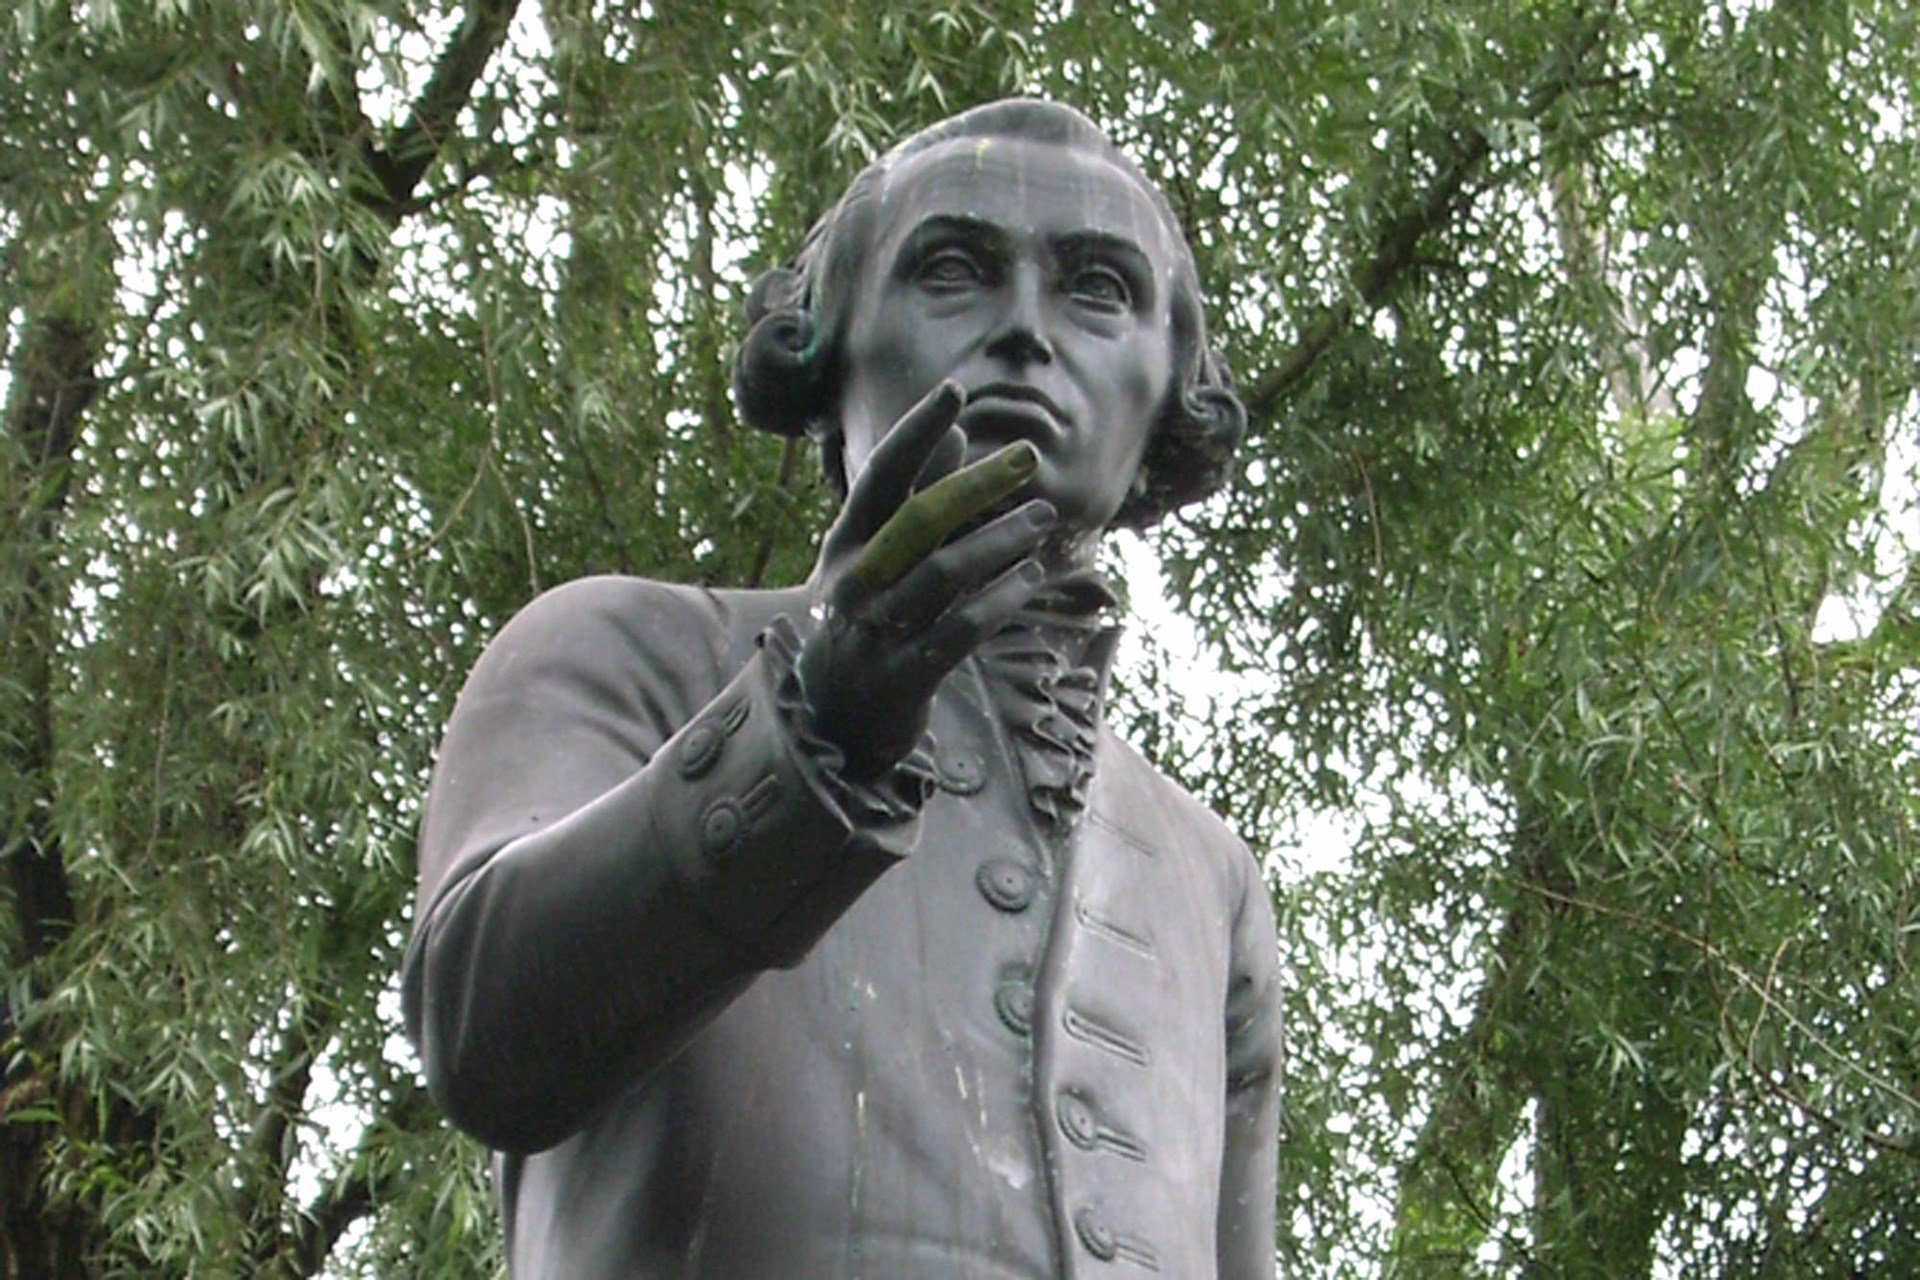 A statue of the 18th century philosopher Immanuel Kant in the front yard of the Kant state university in Kaliningrad, Russia